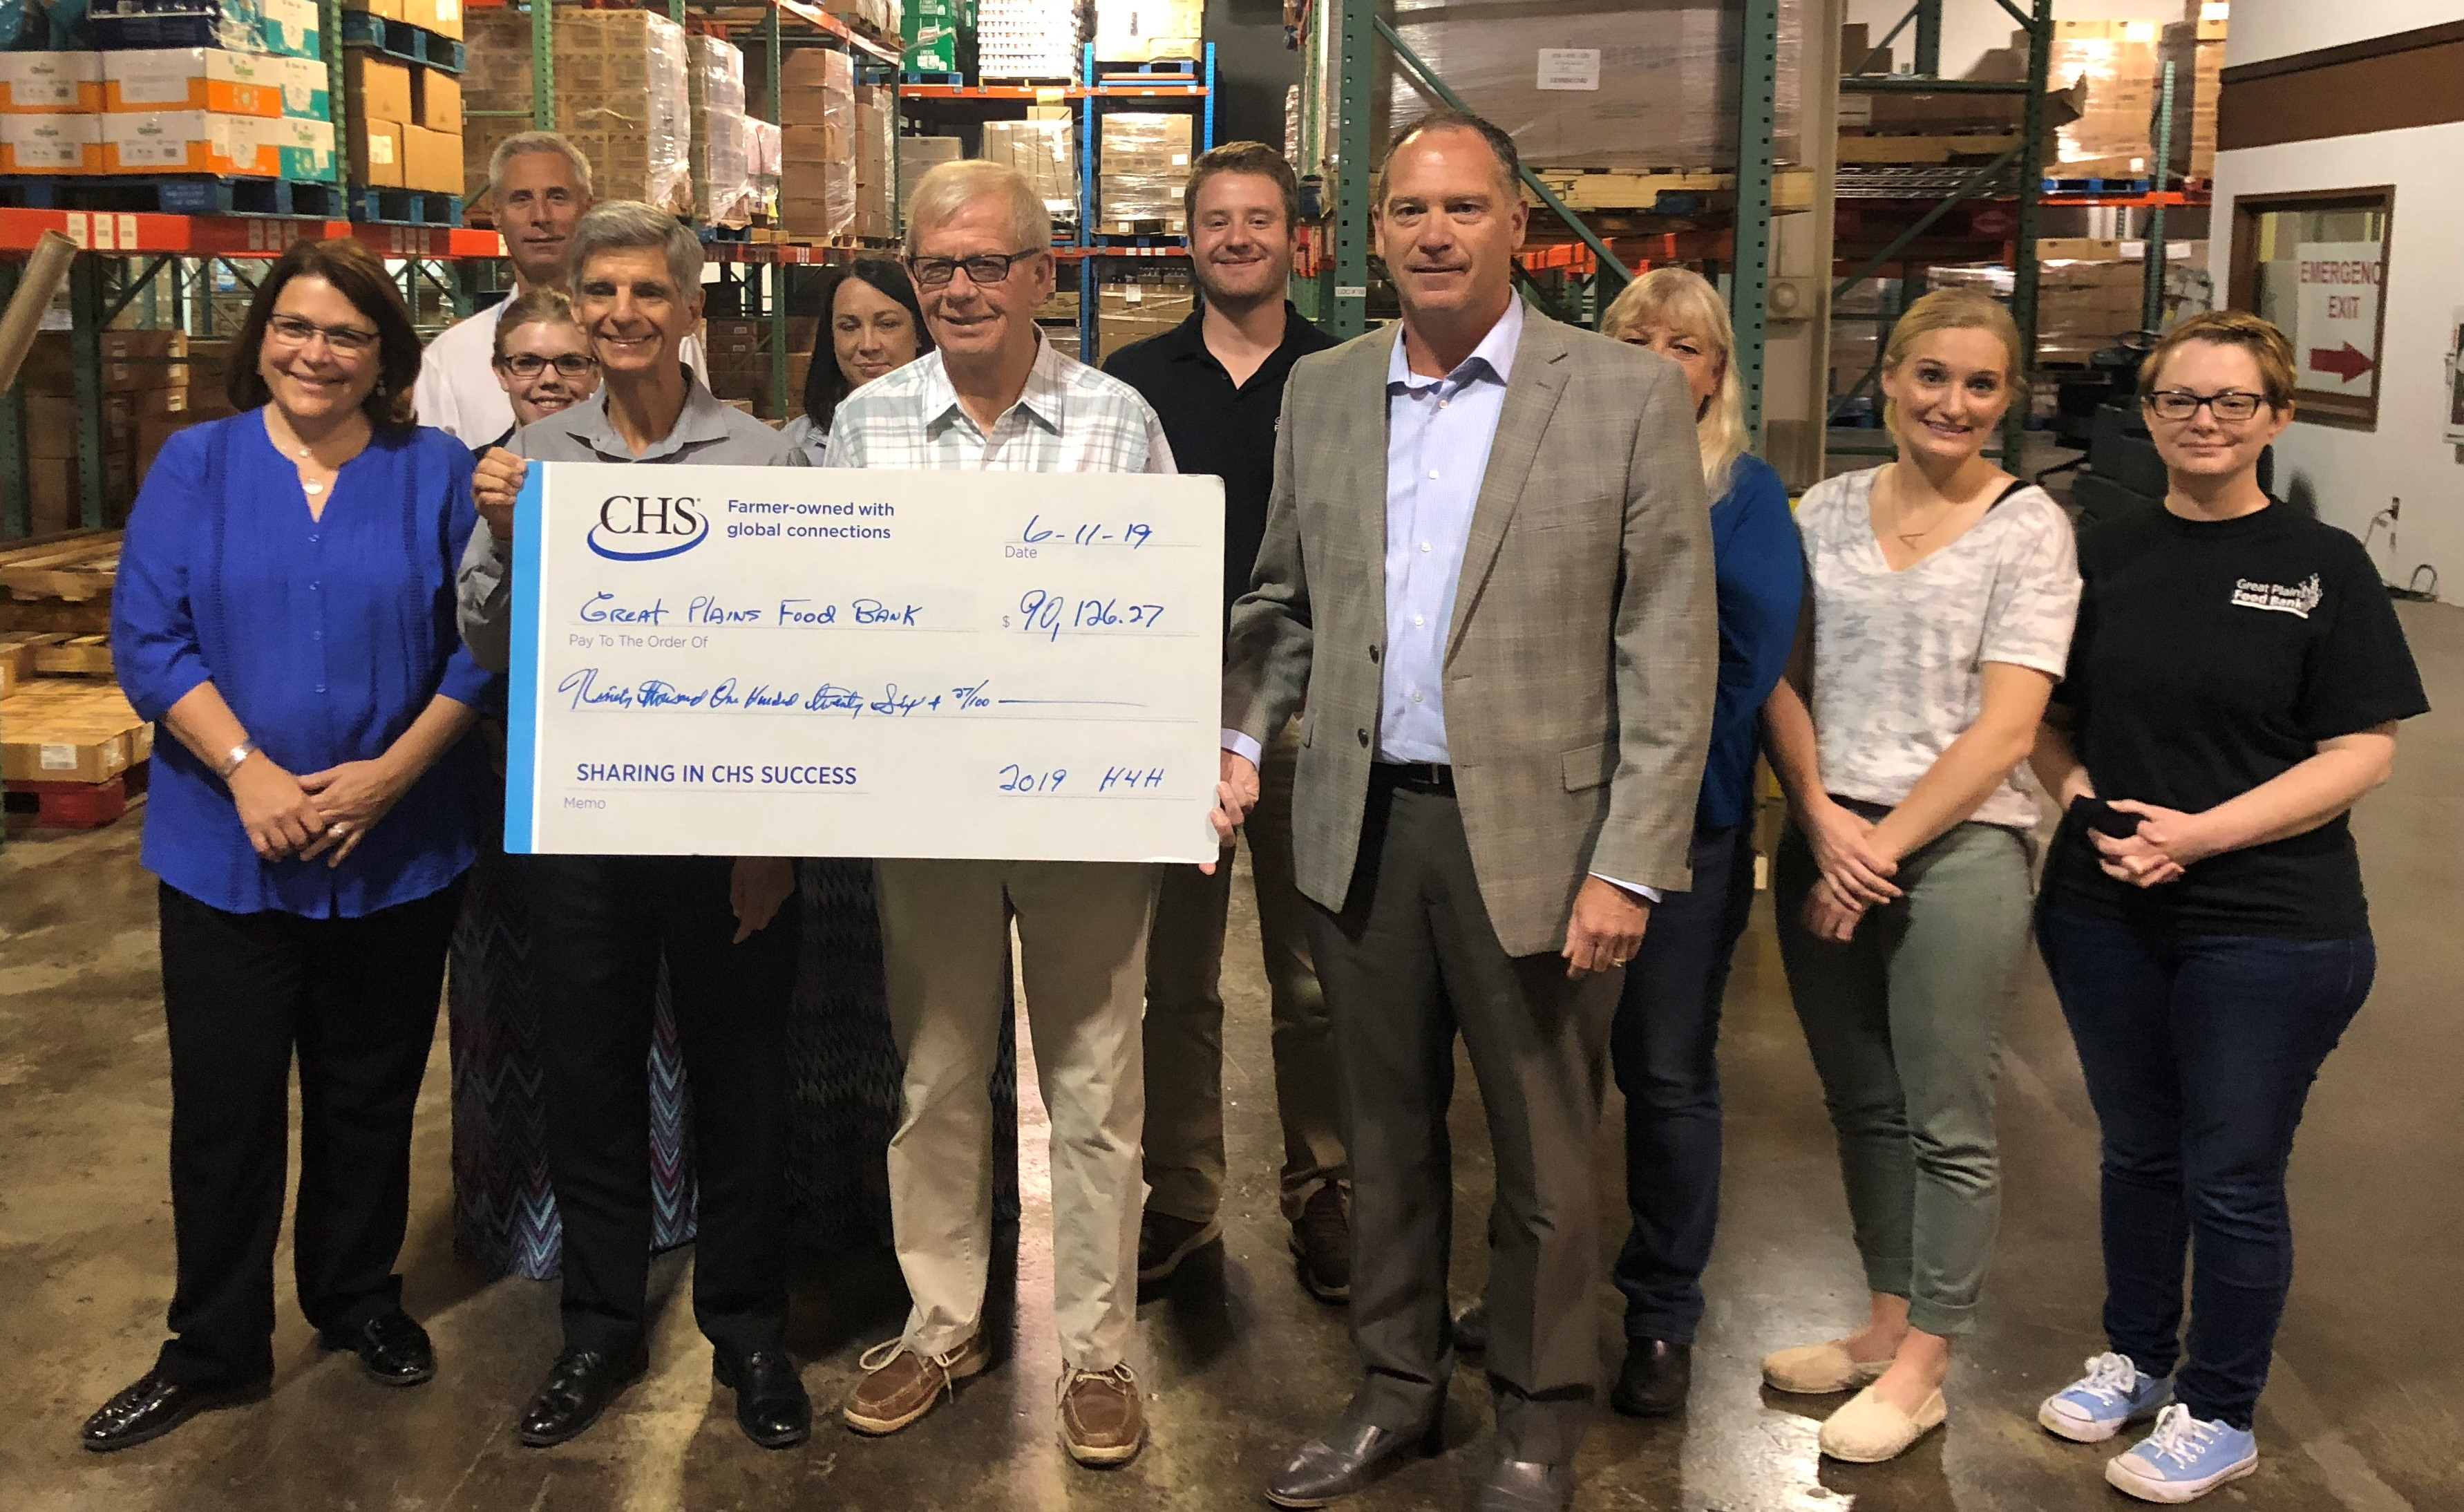 CHS donates $90,126 to Great Plains Food Bank